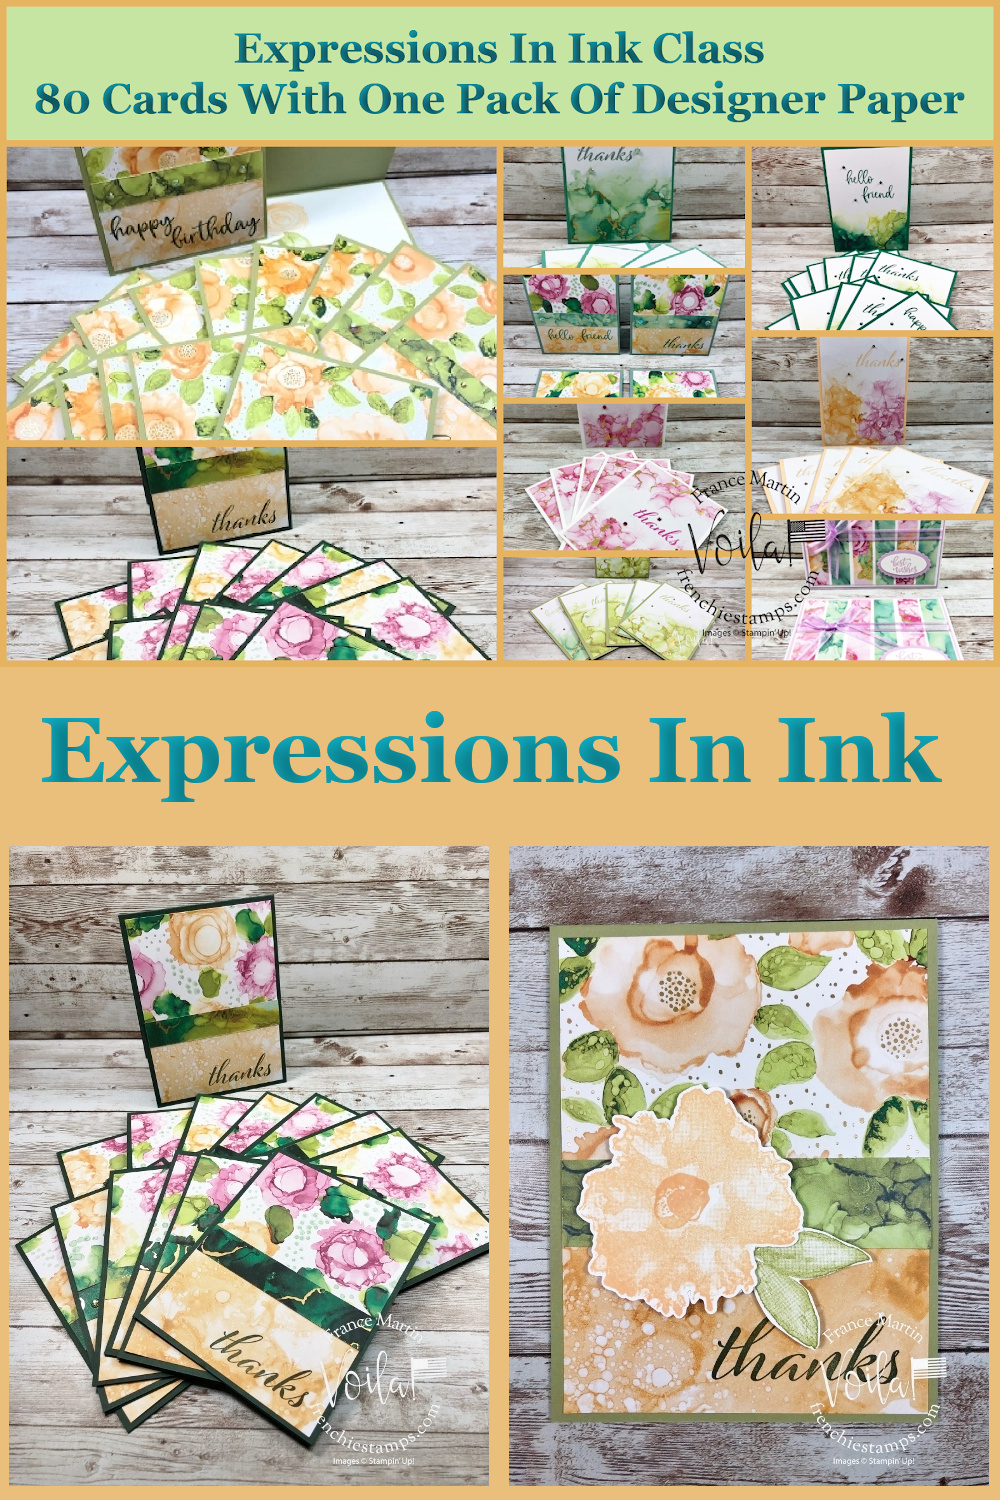 Card Class with Expressions In Ink Designer Paper